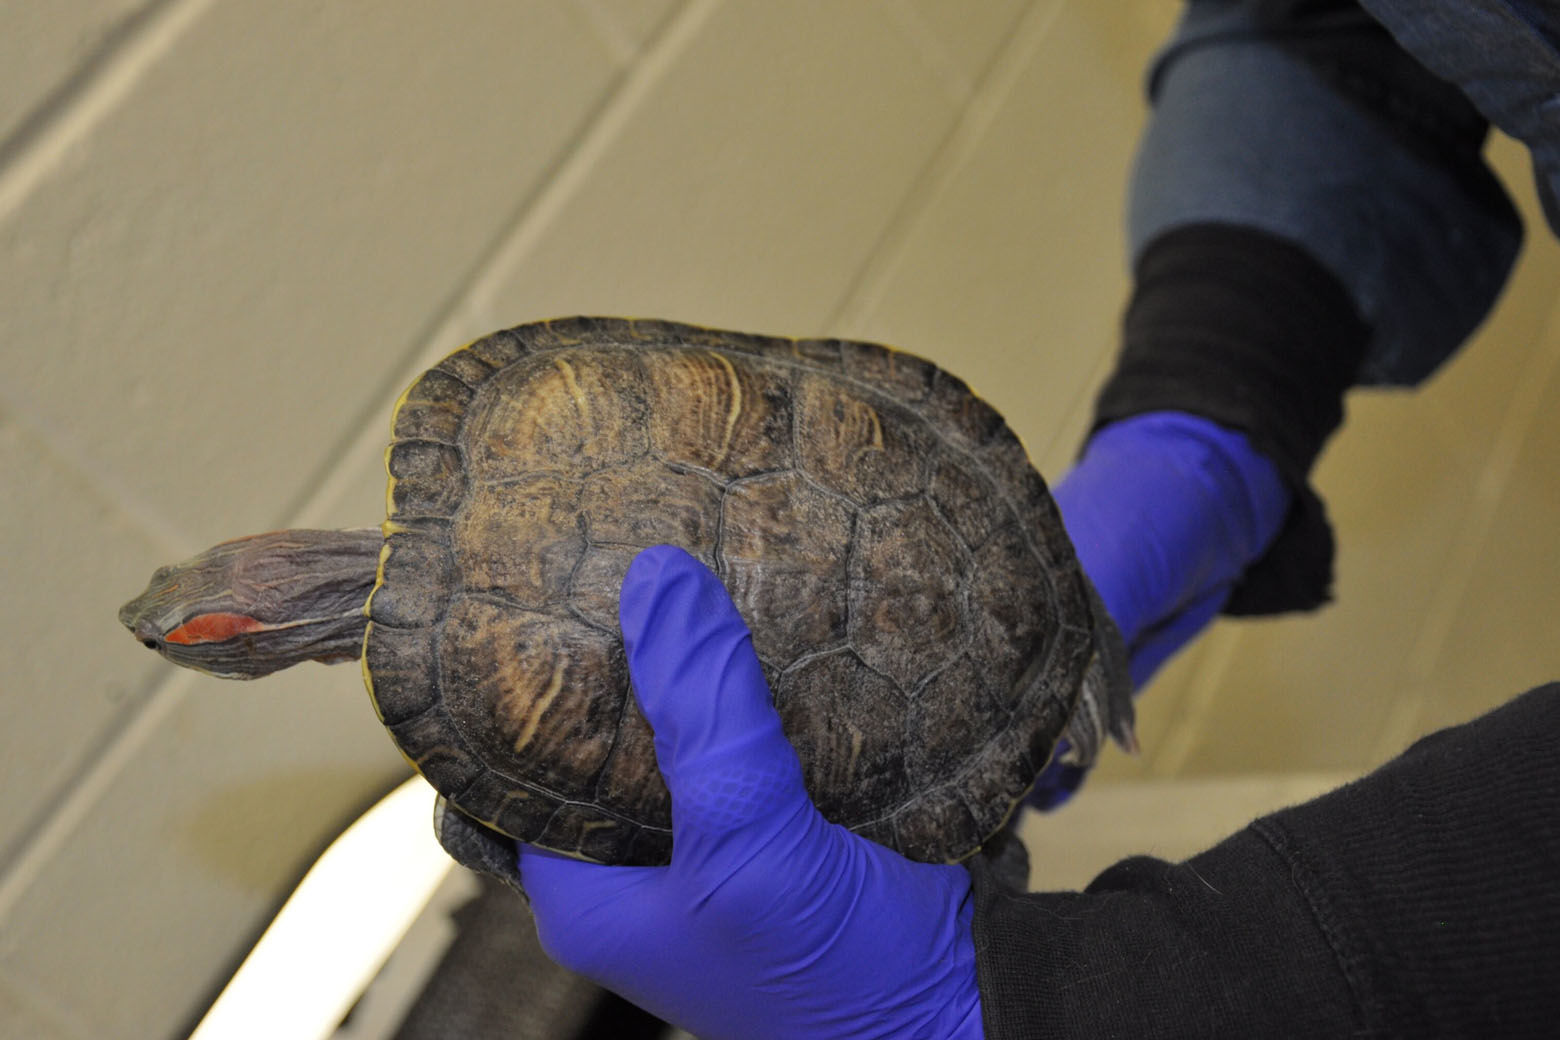 The turtles were confined in a tank with dirty water and appeared to have ammonia scalding on their skin and shells. (Courtesy Humane Rescue Alliance)